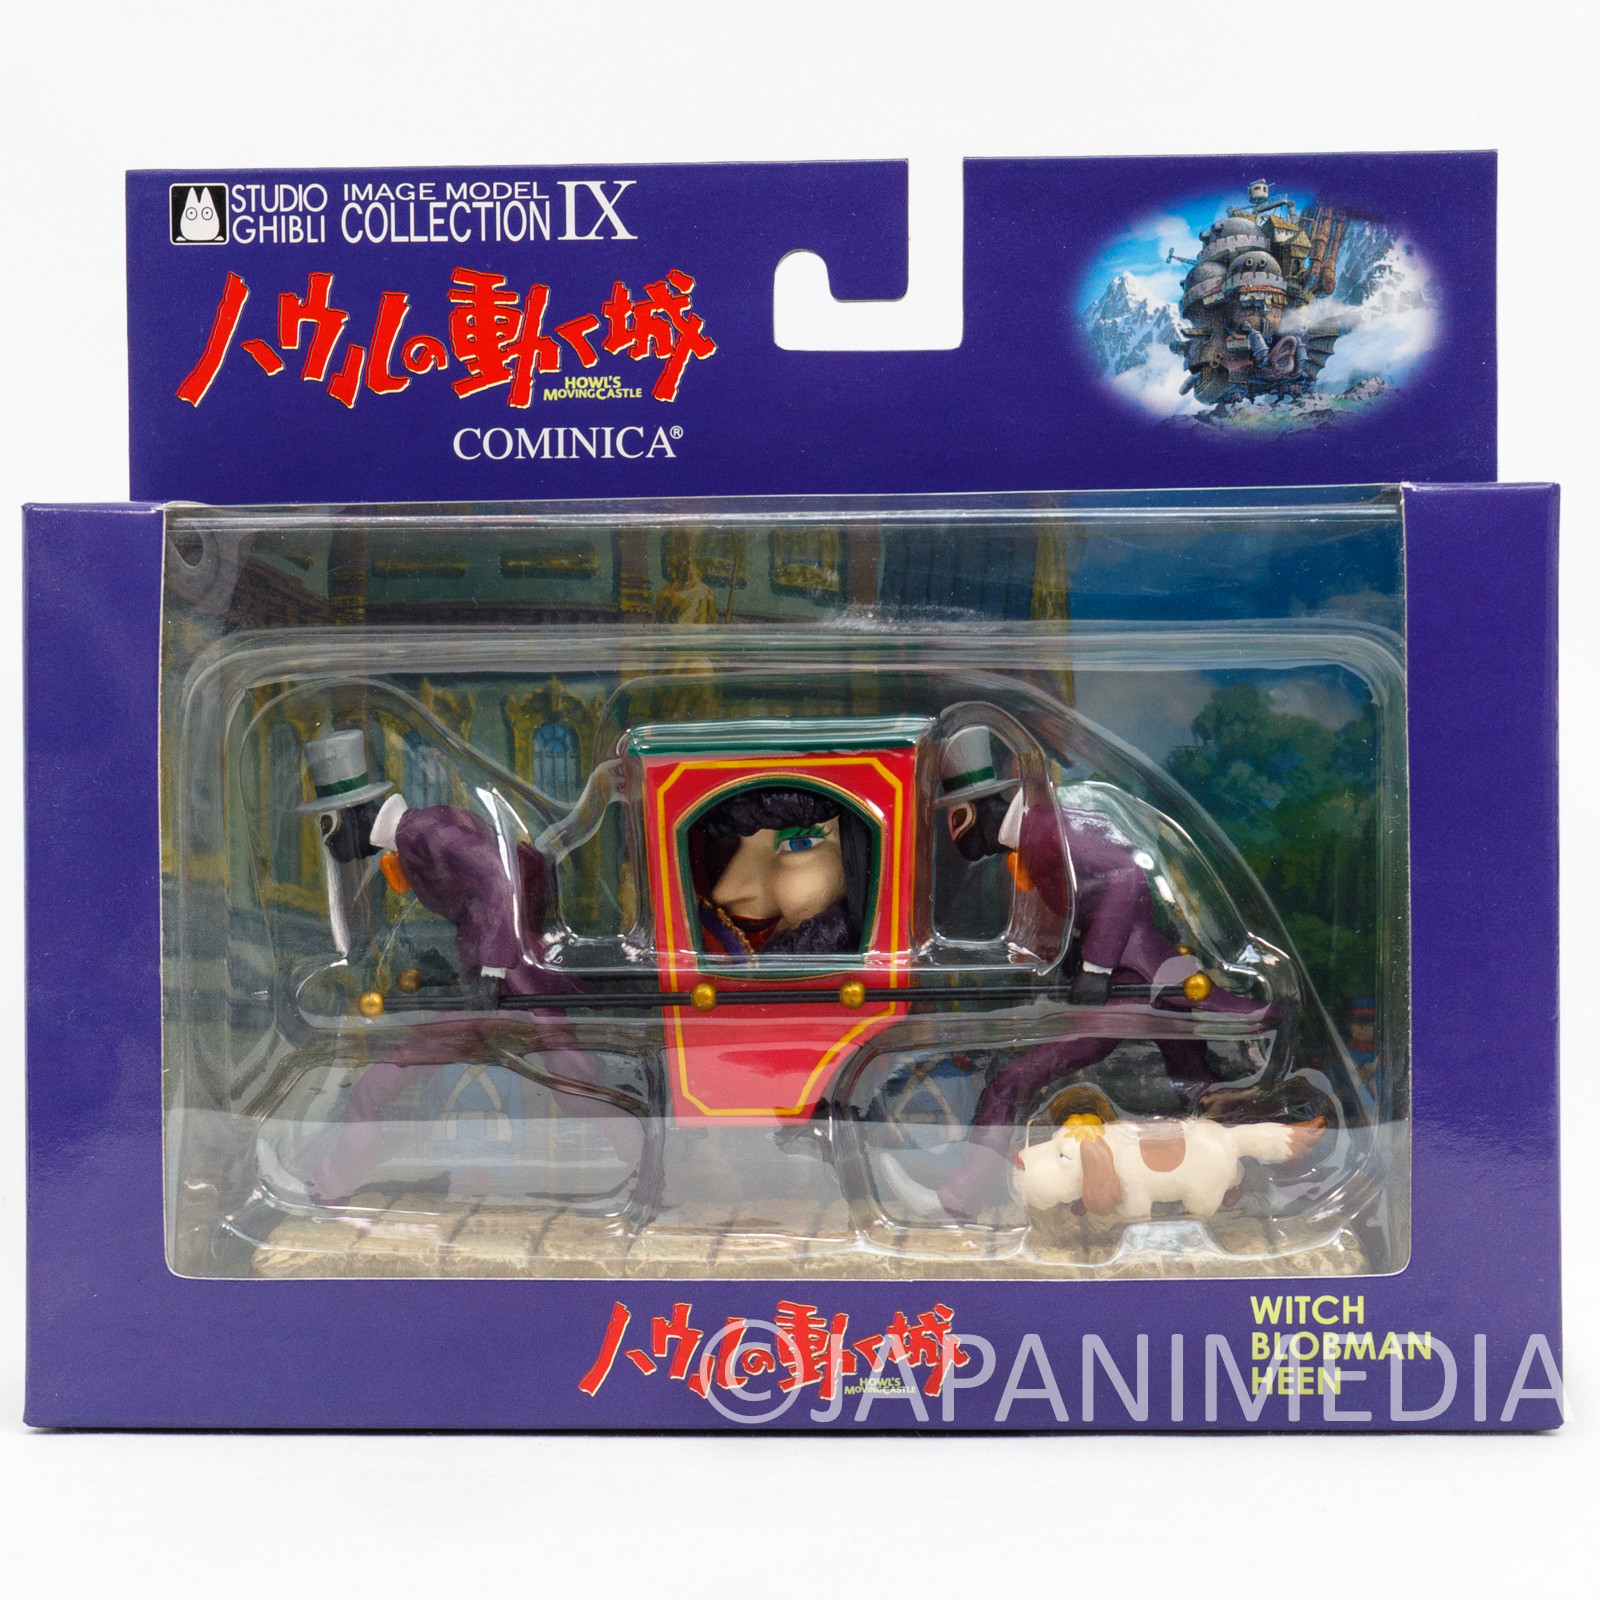 Howl's Moving Castle Image Model Collection Figure Heen Cominica Ghibli JAPAN